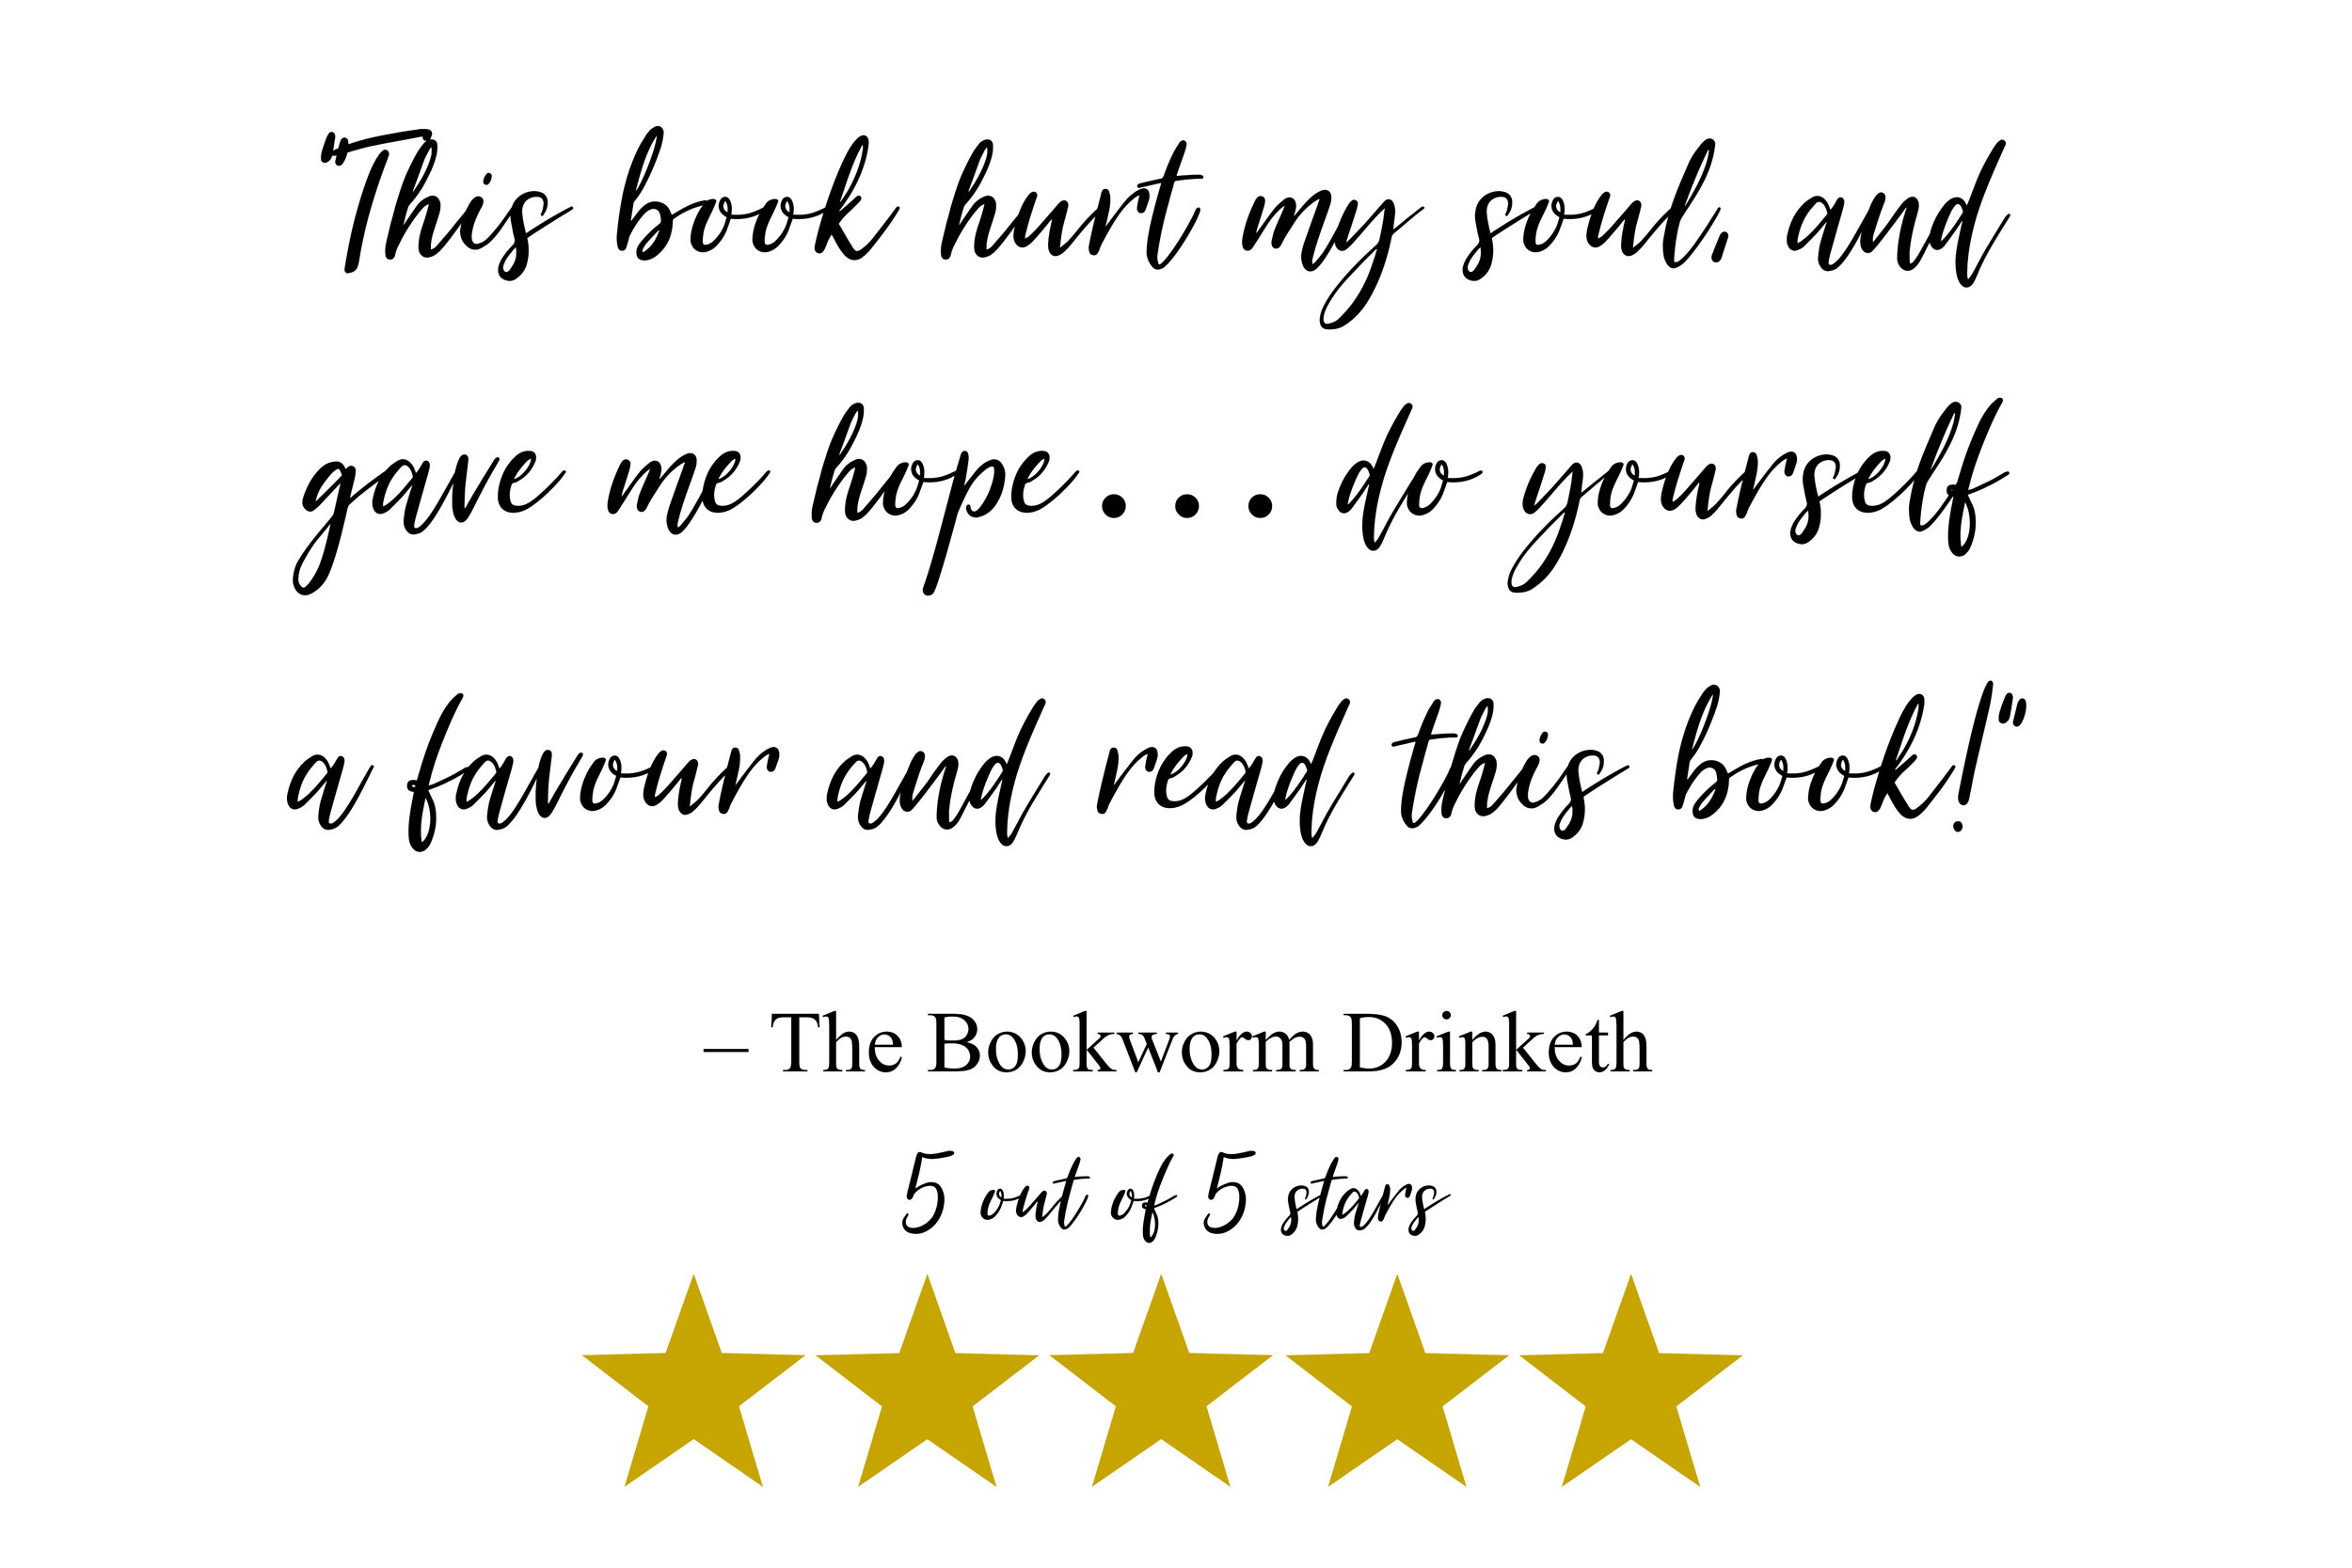 """This book hurt my soul, and gave me hope… do yourself a favour and read this book!"" -The Bookworm Drinketh"